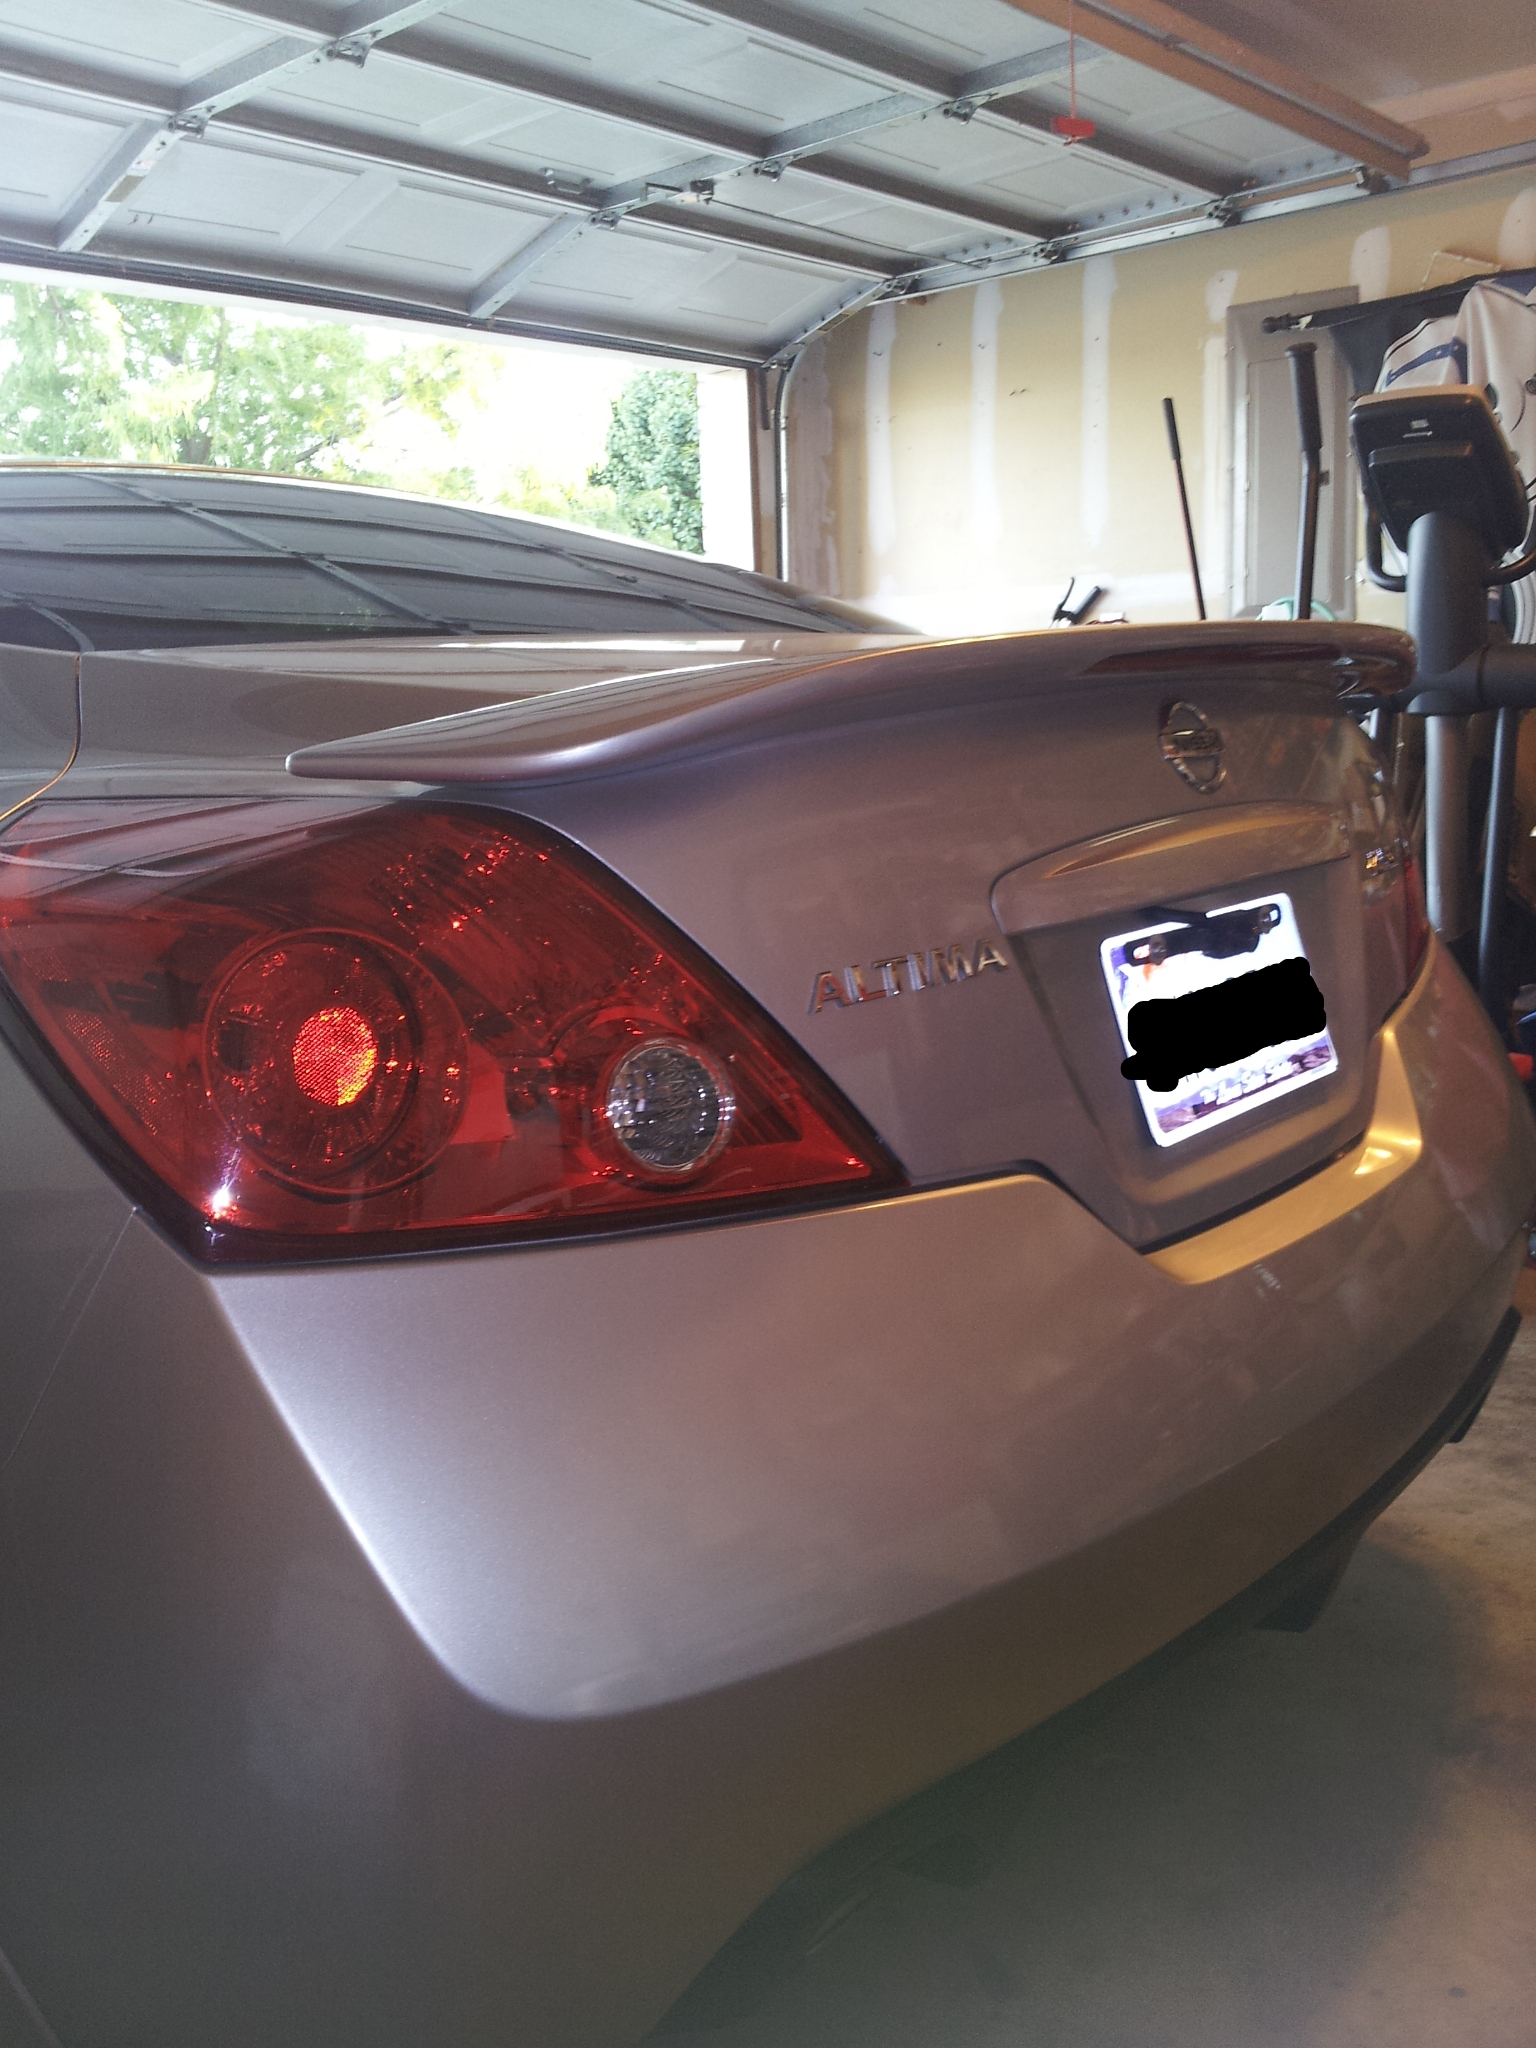 Spoiler Done also Nissensor in addition Amortiguador Monroe Oespectrum Nissan Altima D Nq Np Mlm F as well Streetsetup likewise Altima Ser Catback. on nissan altima